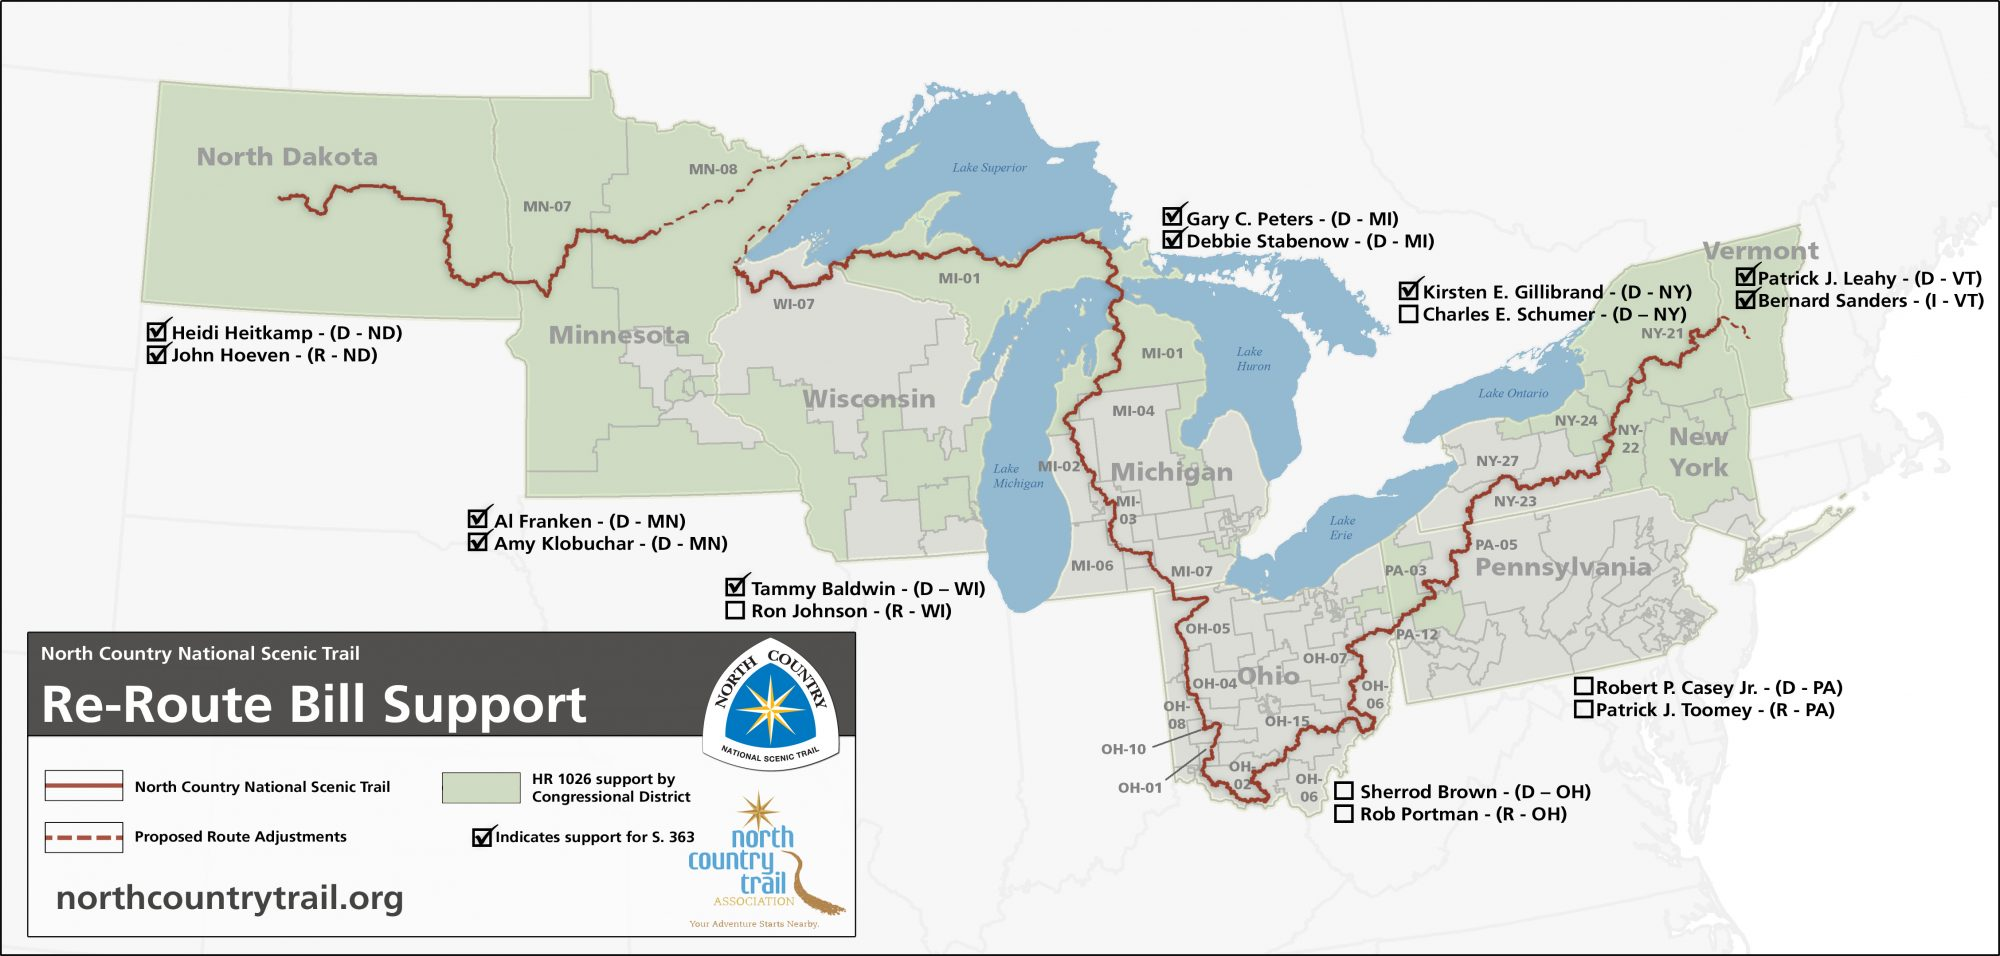 North Country Trail re-route plan